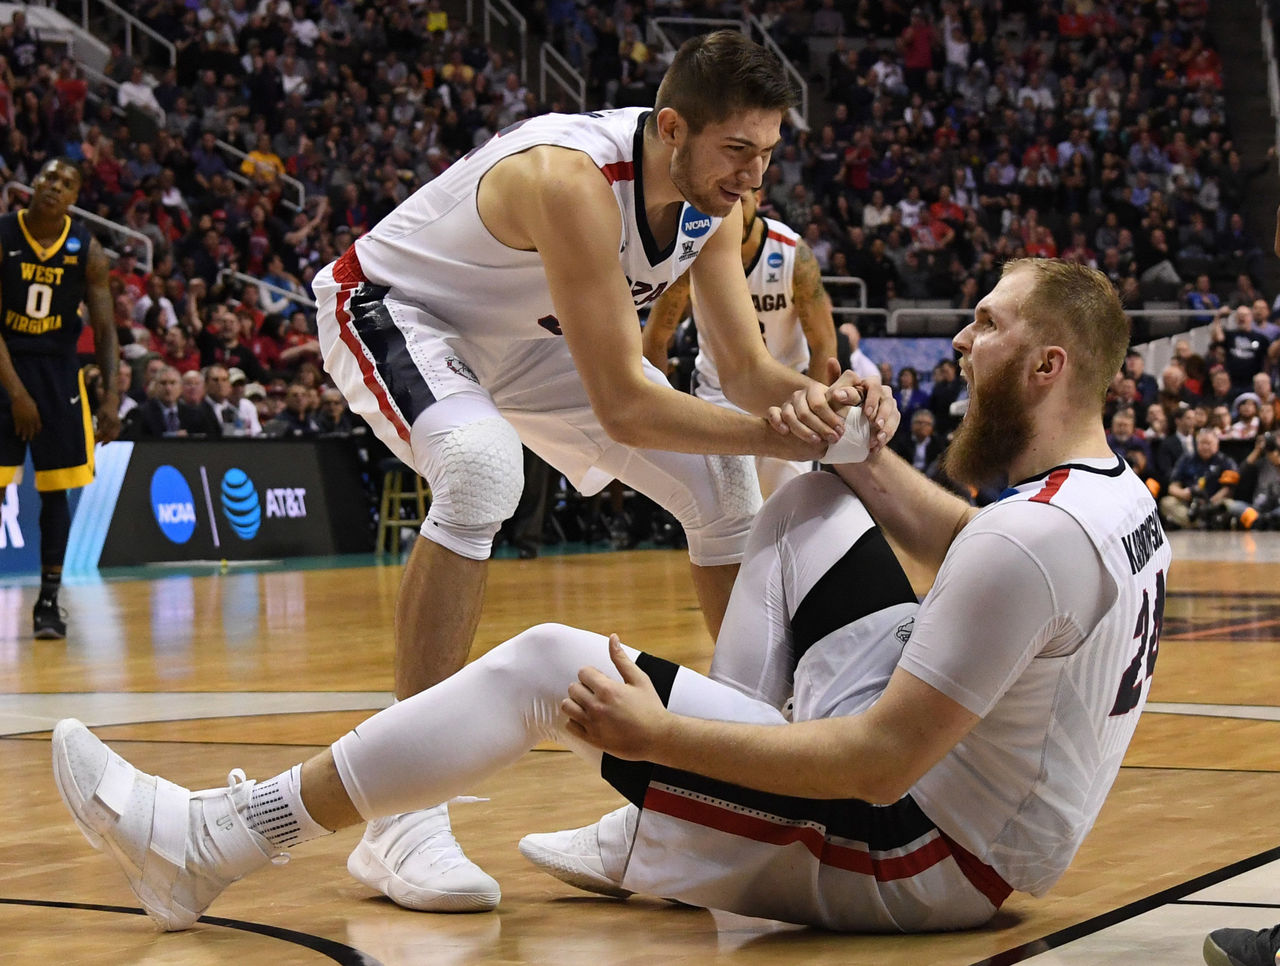 Cropped 2017 03 24t014654z 932603104 nocid rtrmadp 3 ncaa basketball ncaa tournament west regional gonzaga vs west virginia